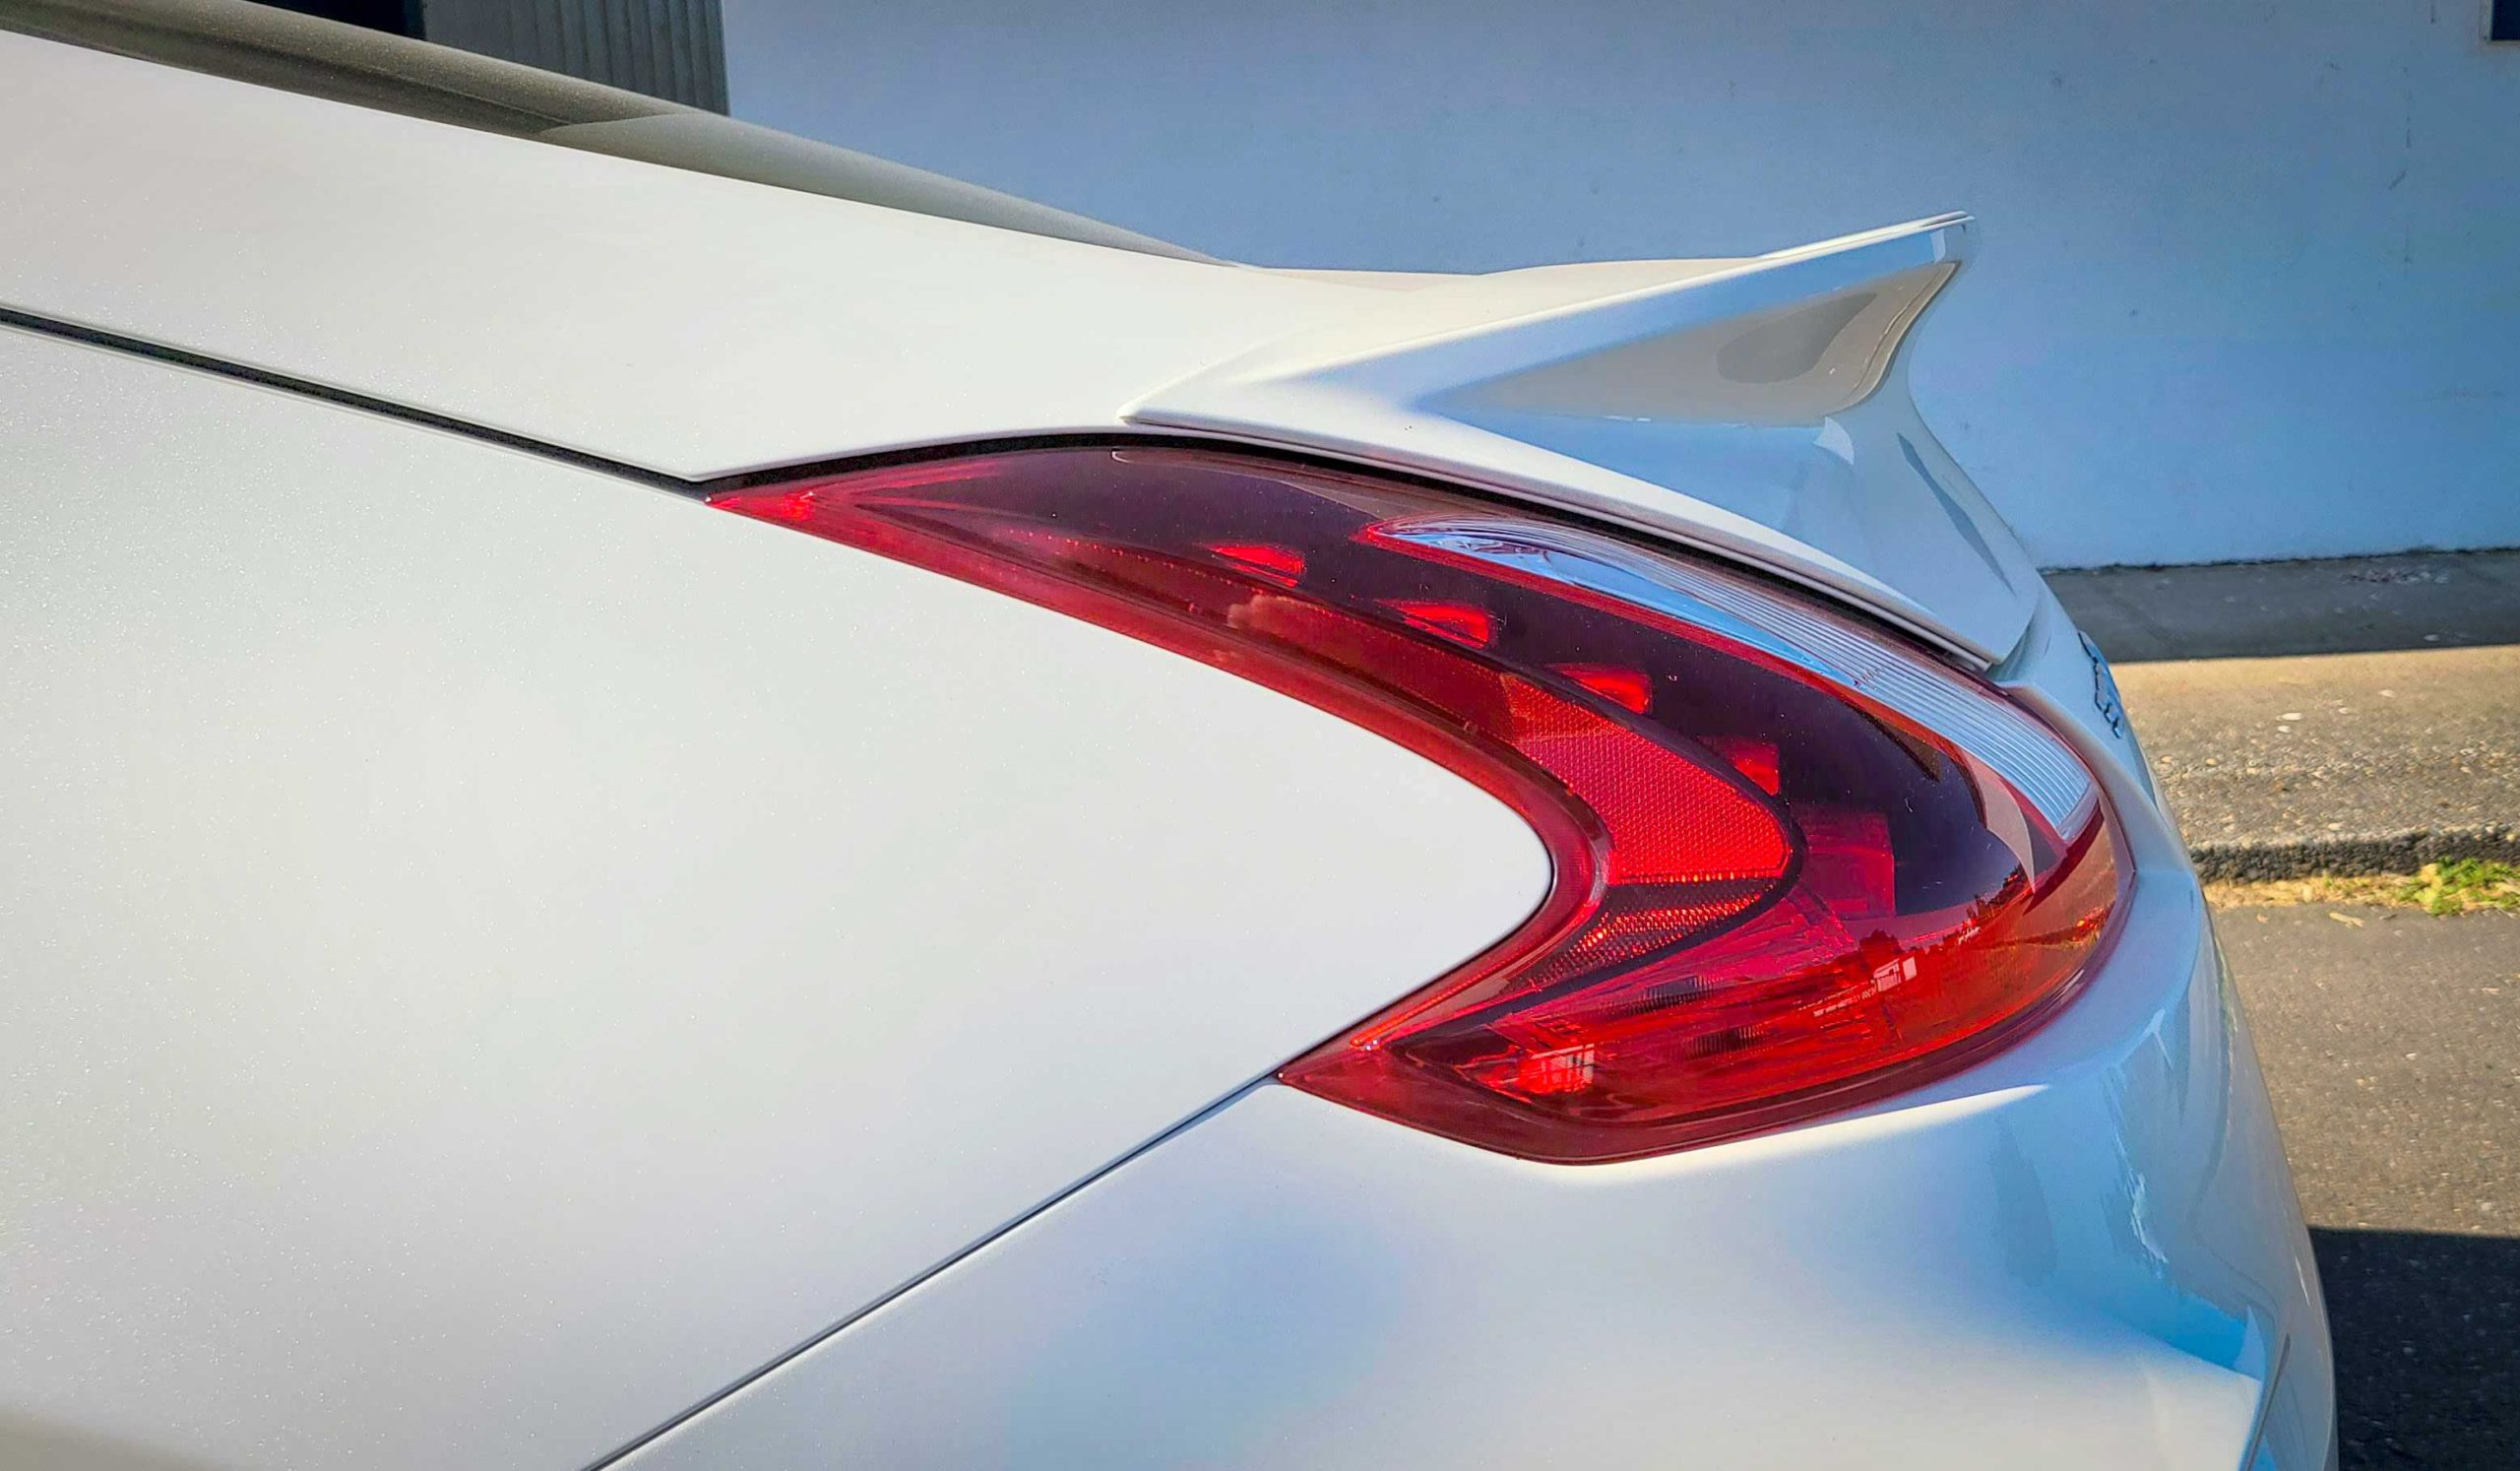 The white Nissan 370Z Nismo's sleek rear taillights.